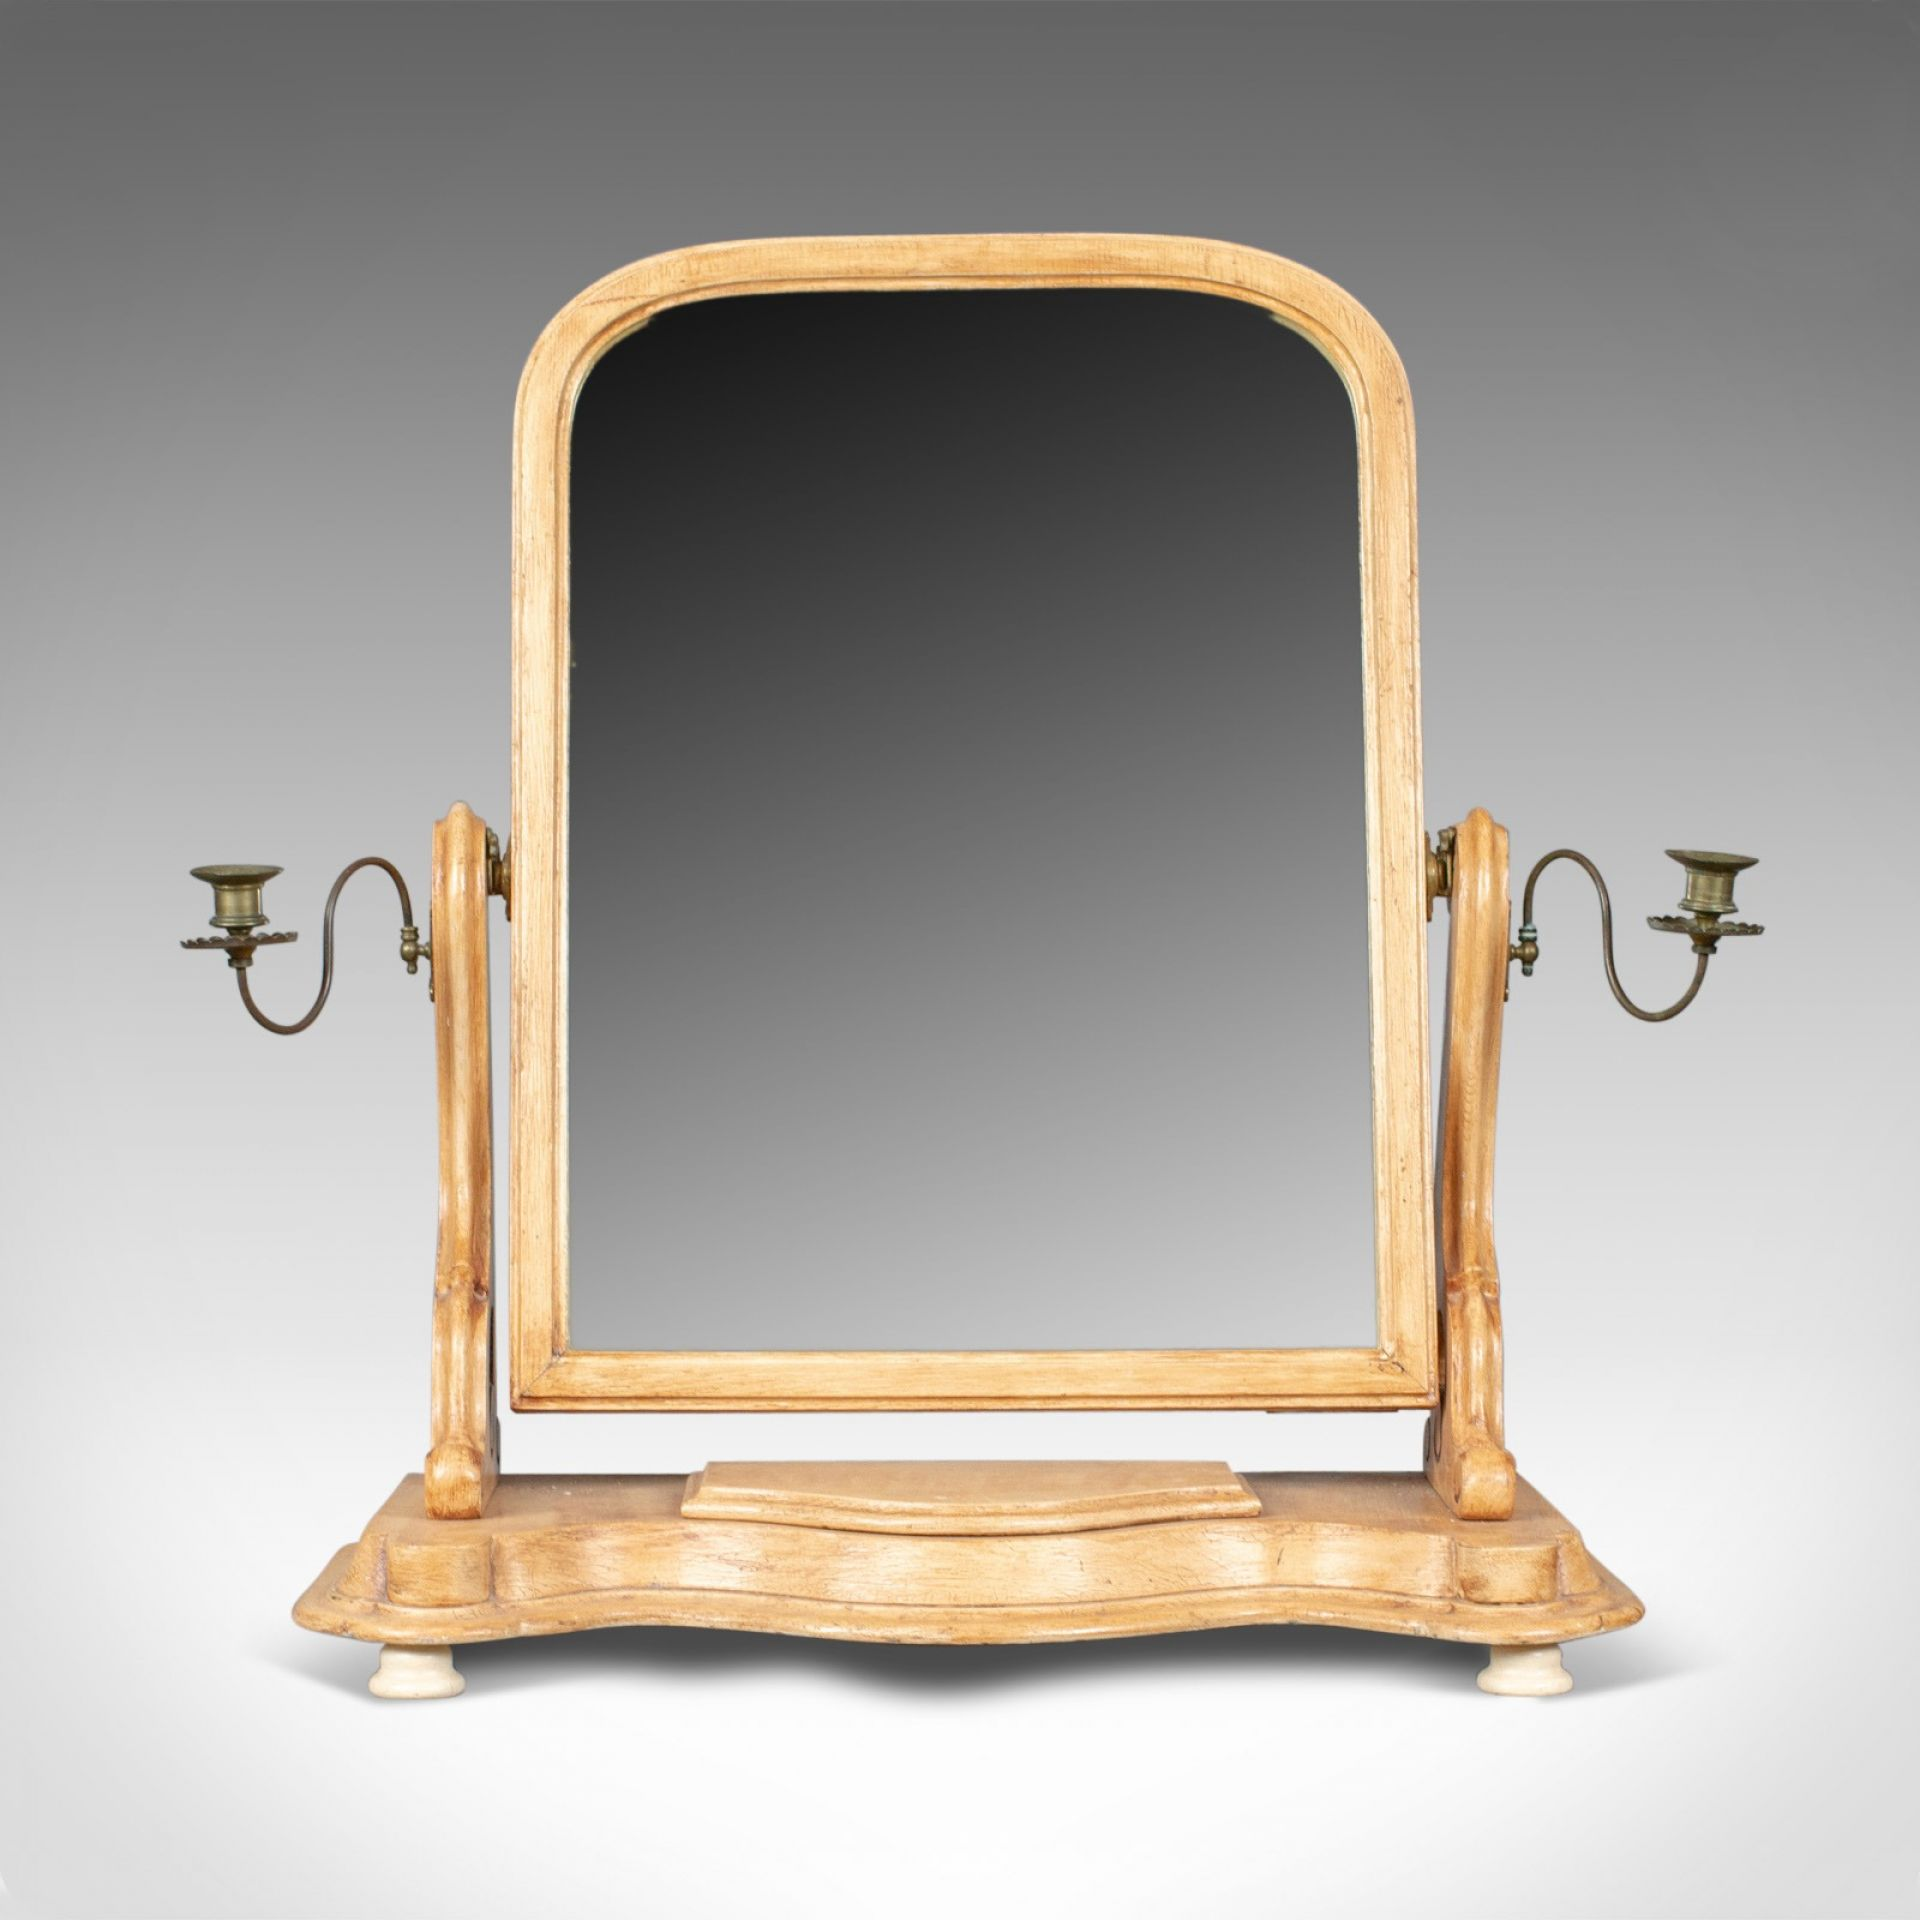 Antique Dressing Table Mirror, English Victorian, Vanity, Toilet, Painted, c1870